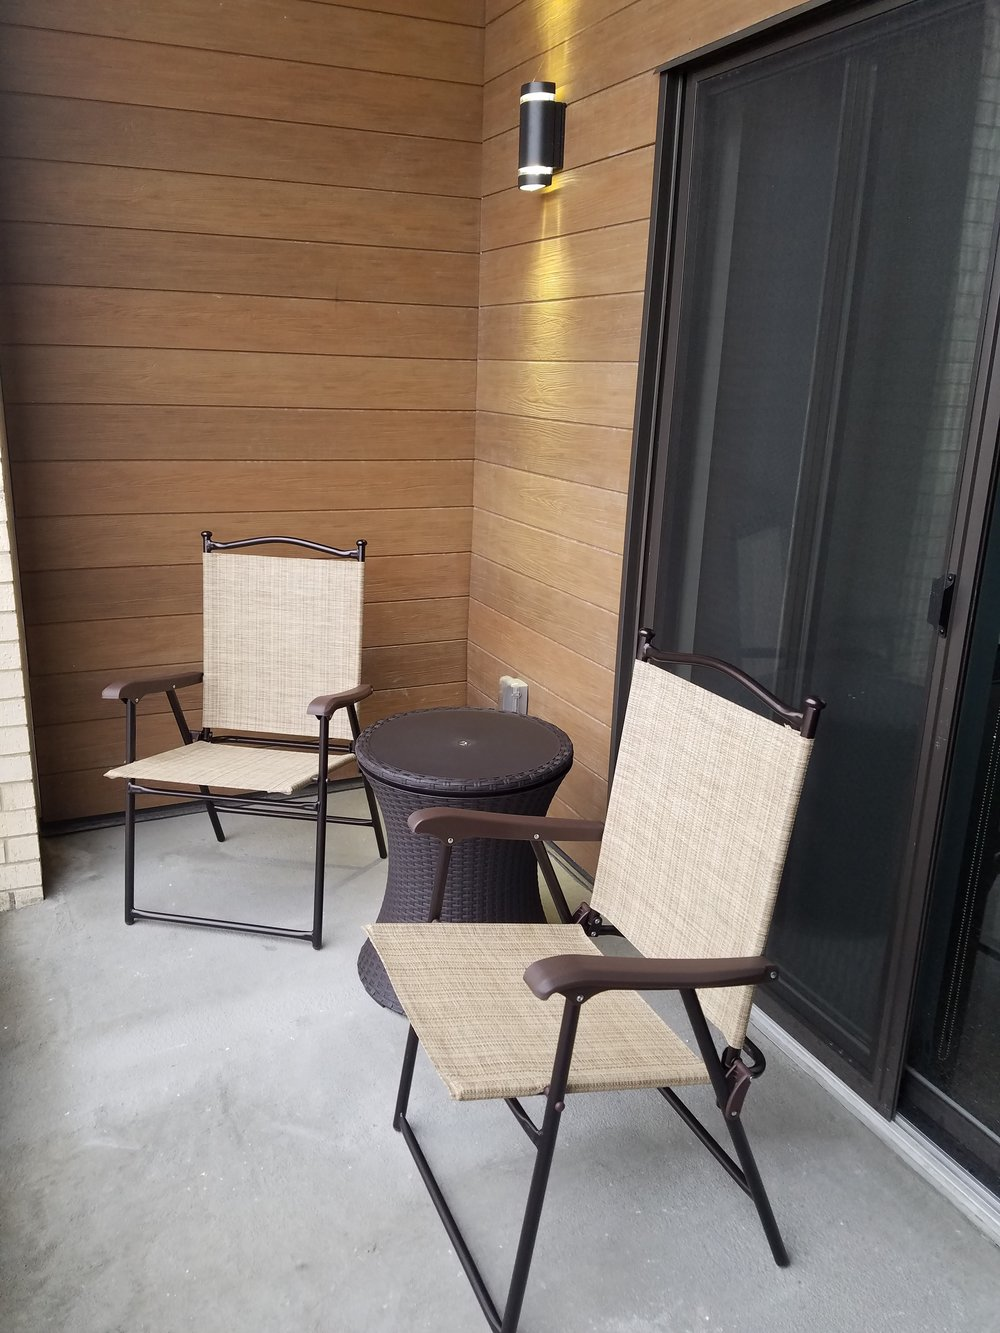 patio furniture.jpg